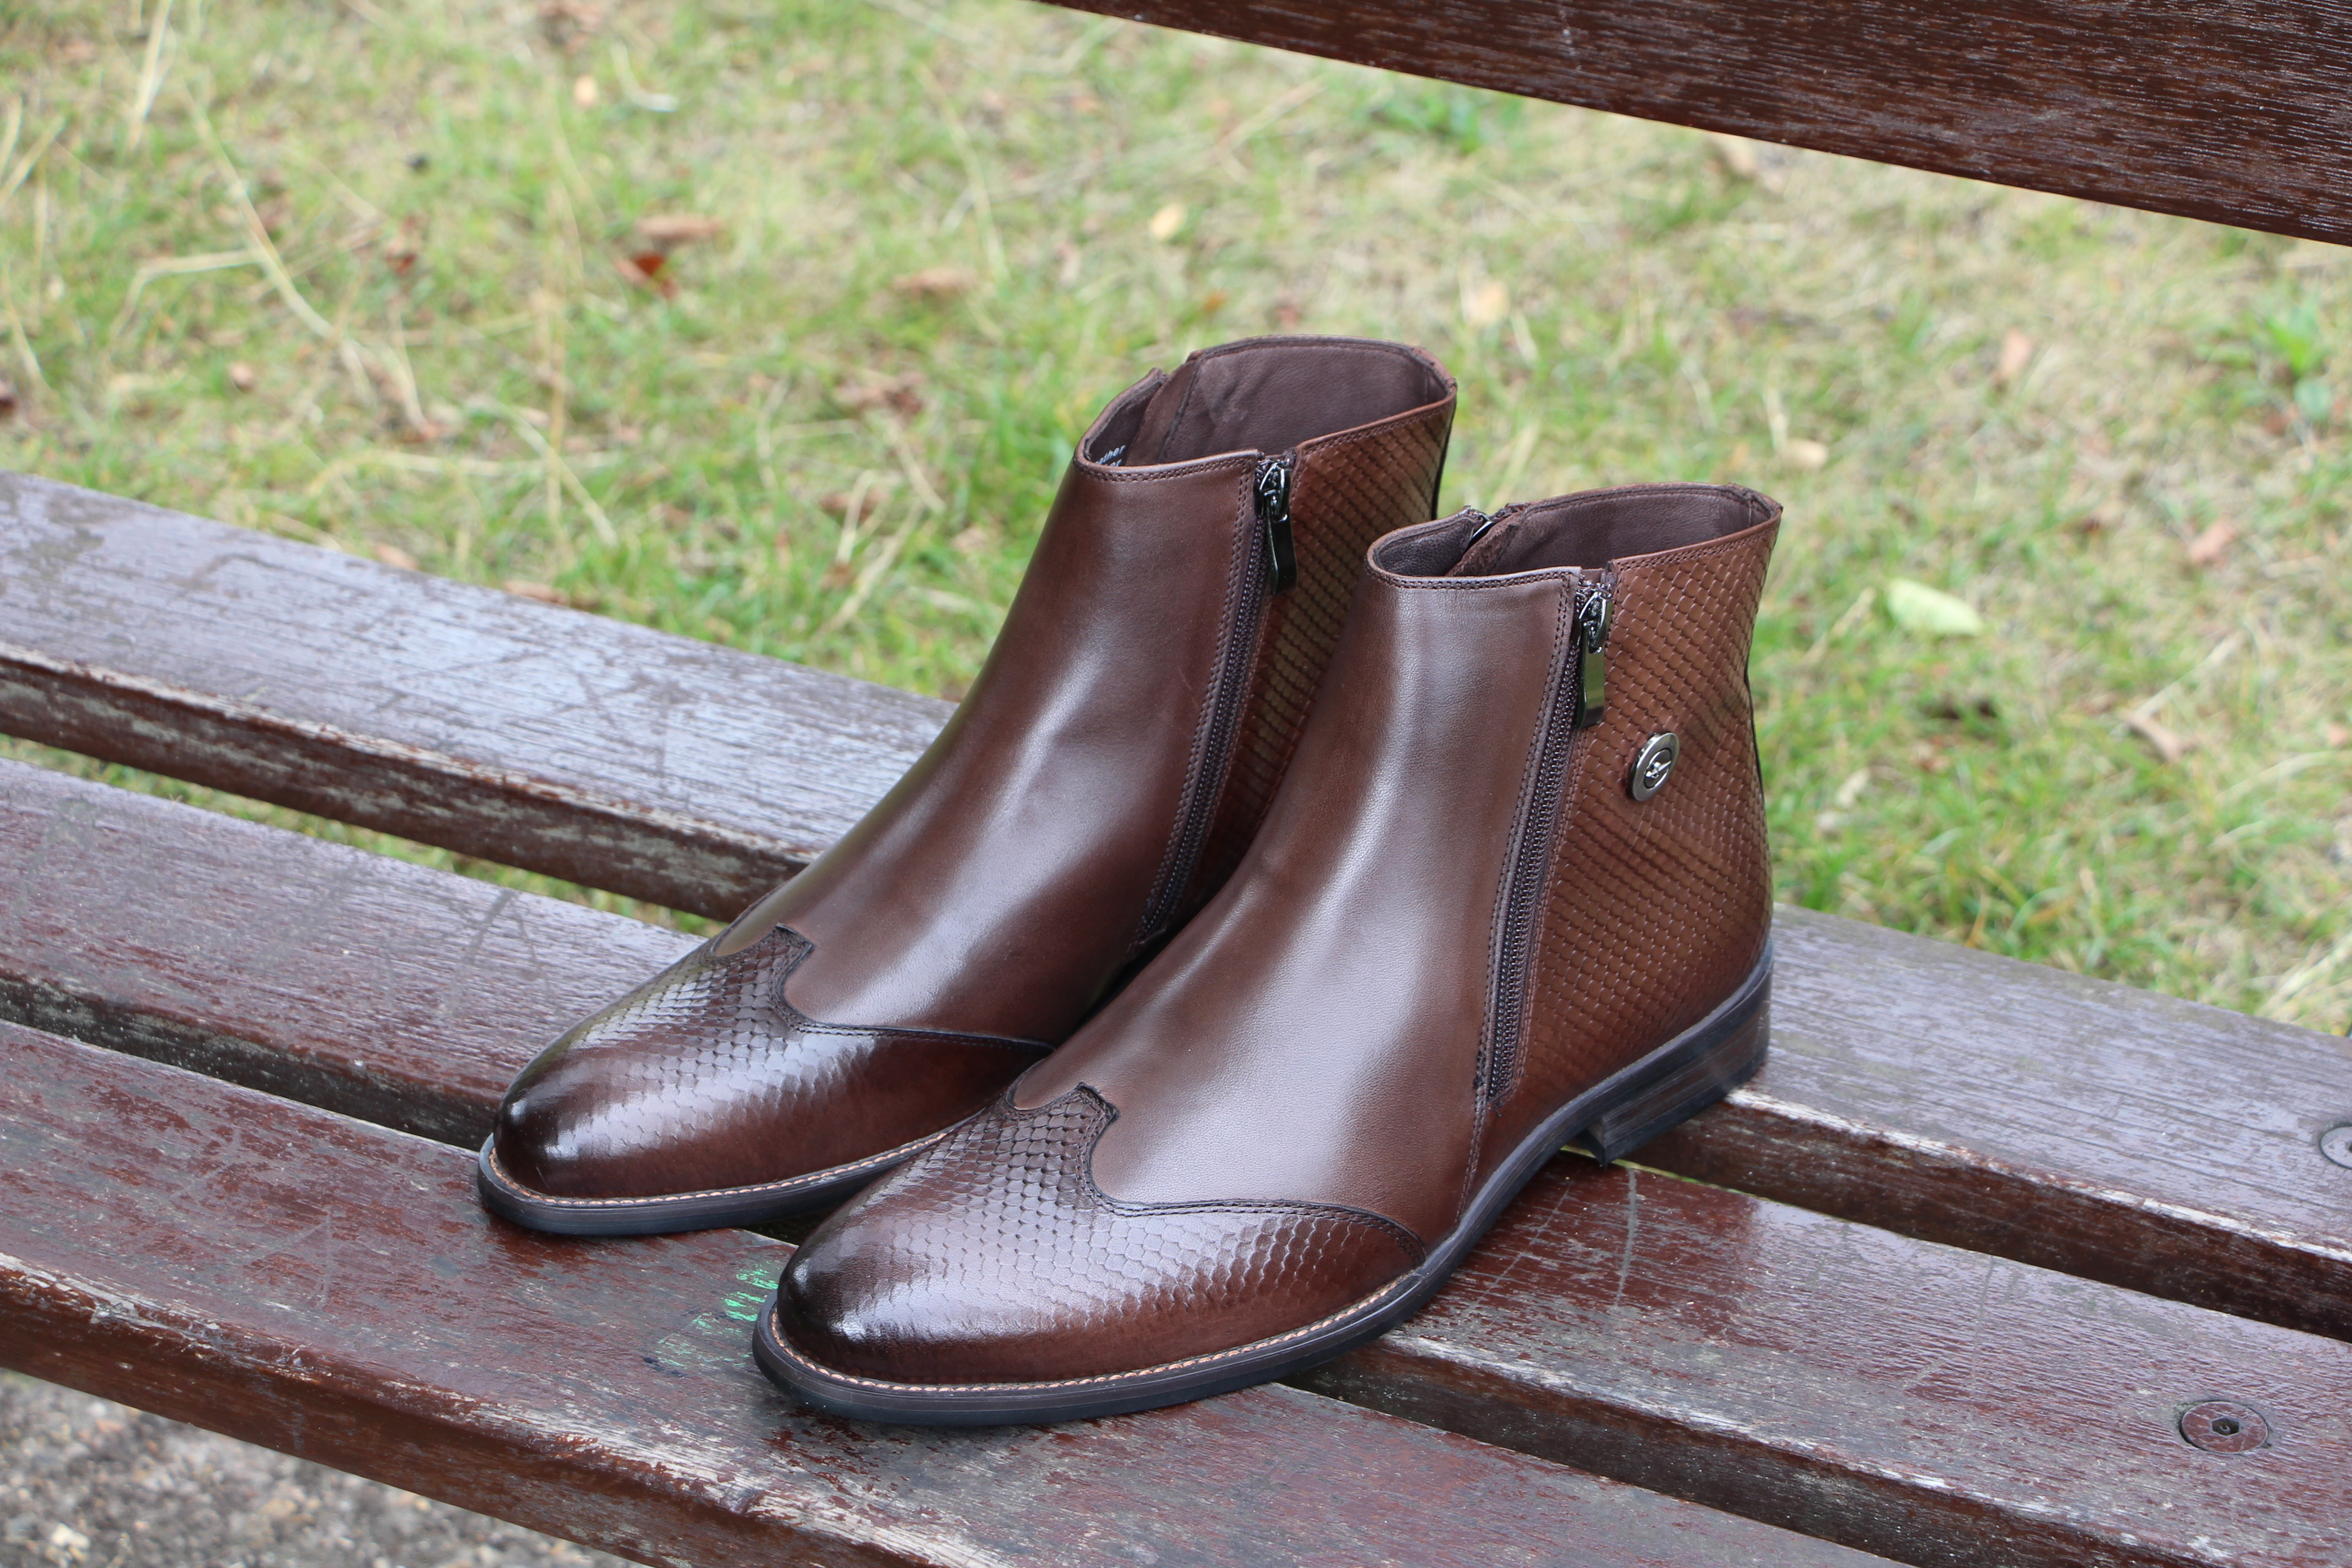 leather footwear is perfect for the UK